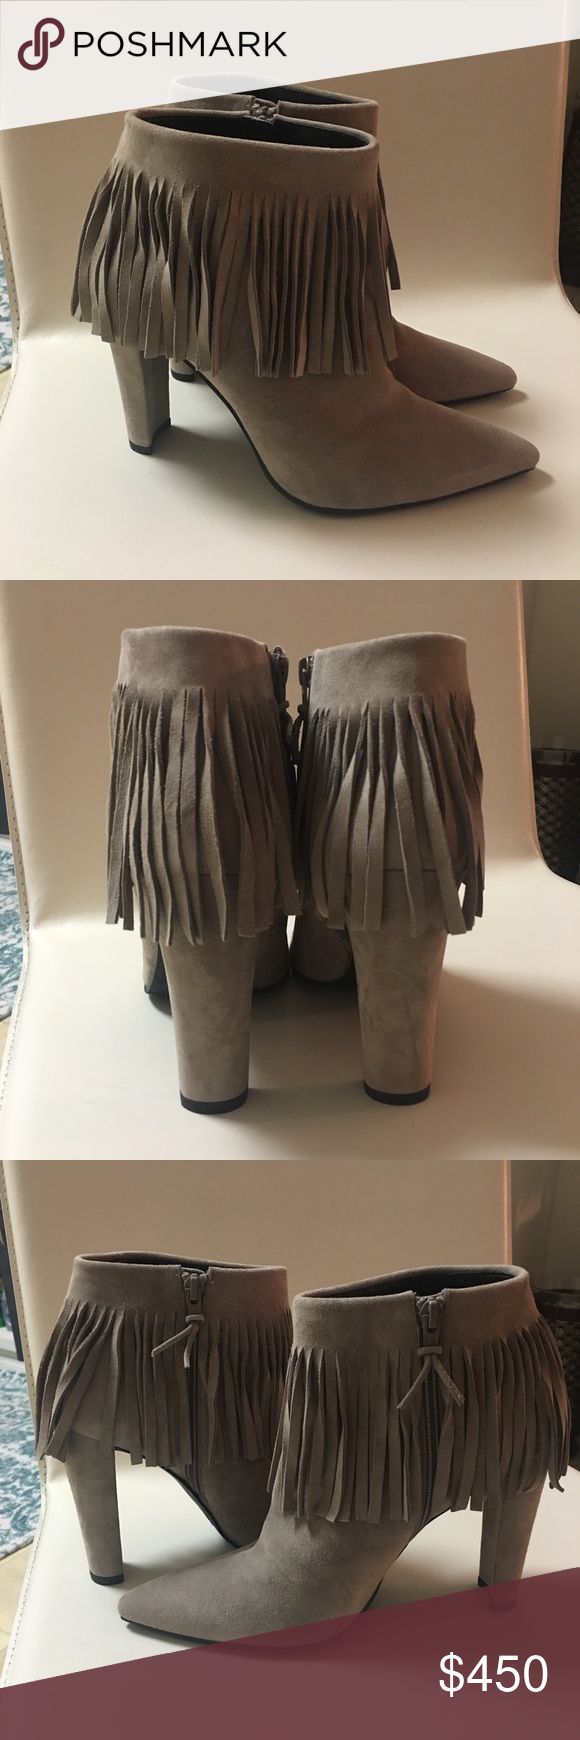 Stuart Weitzman Fringetimes Fringed Ankle Boots A sequel to our SS15 bold bohemian fashion flash, the fringe continues to be a hit with an update on the point-toe detail done on a bootie pattern. Pair the FRINGETIMES with a leather leggings or a body hugging Herve Leger dress- Heel height measures approximately 100MM- Hidden inside zipper- Leather insole- Rubber sole- Made in Spain. Perfect condition. Runs a tiny bit small in my opinion. Stuart Weitzman Shoes Ankle Boots & Booties